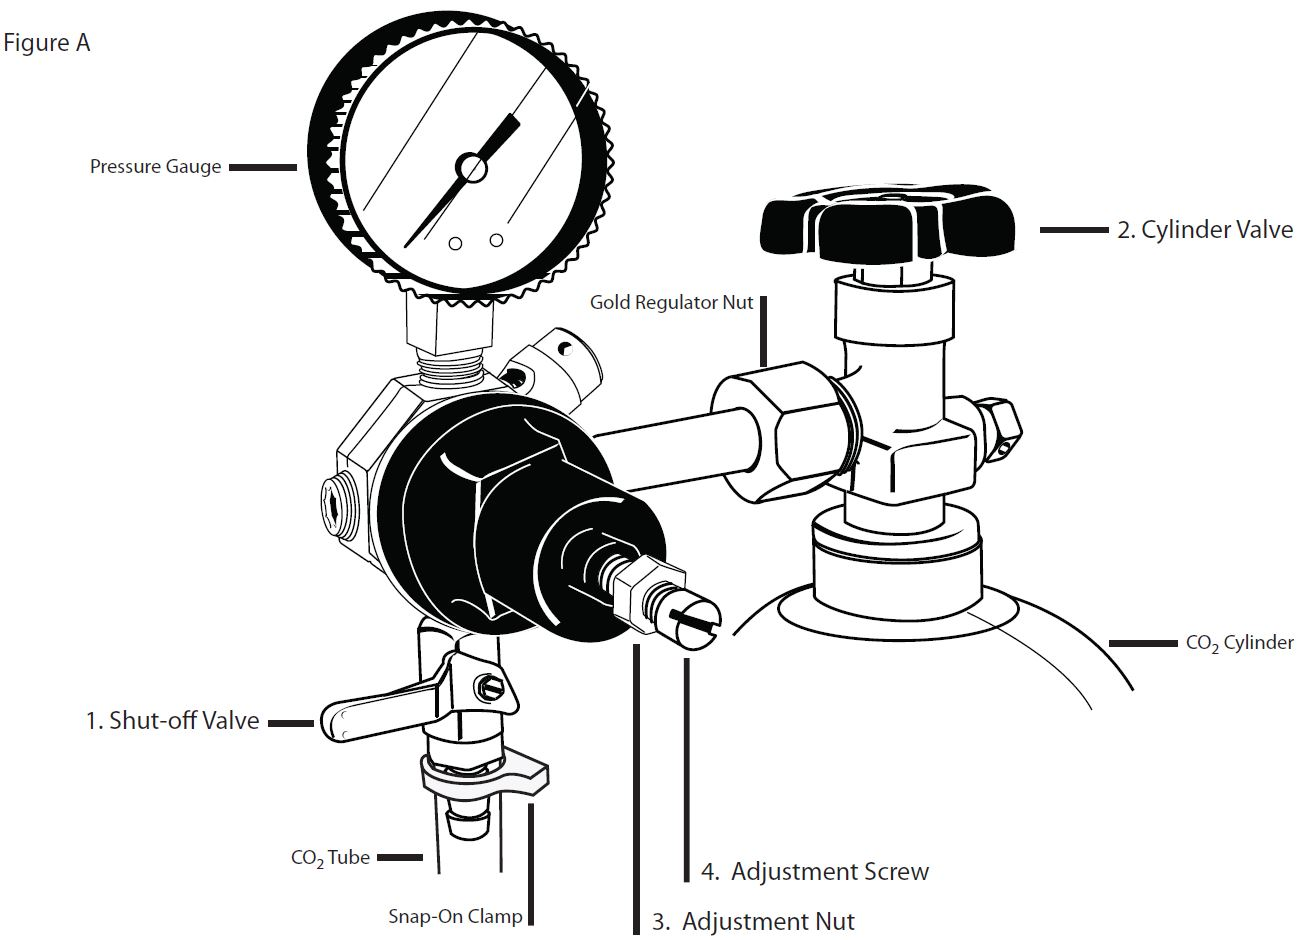 hight resolution of this guide assumes that your co2 regulator is firmly and properly attached to the co2 cylinder and that you are using the single gauge regulator that your